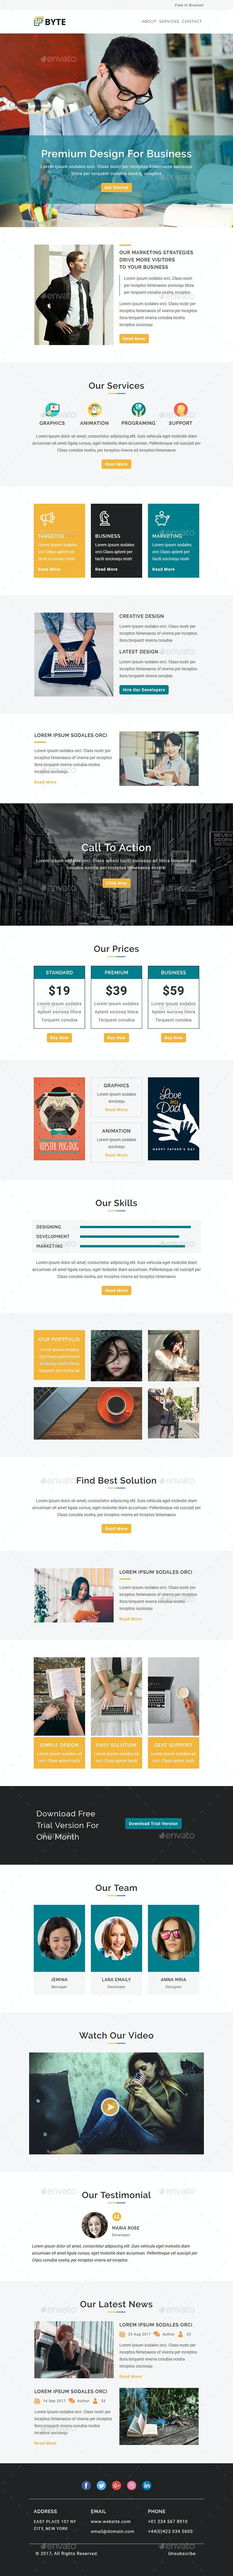 Byte - Email Newsletter PSD Template - E-newsletters Web Elements